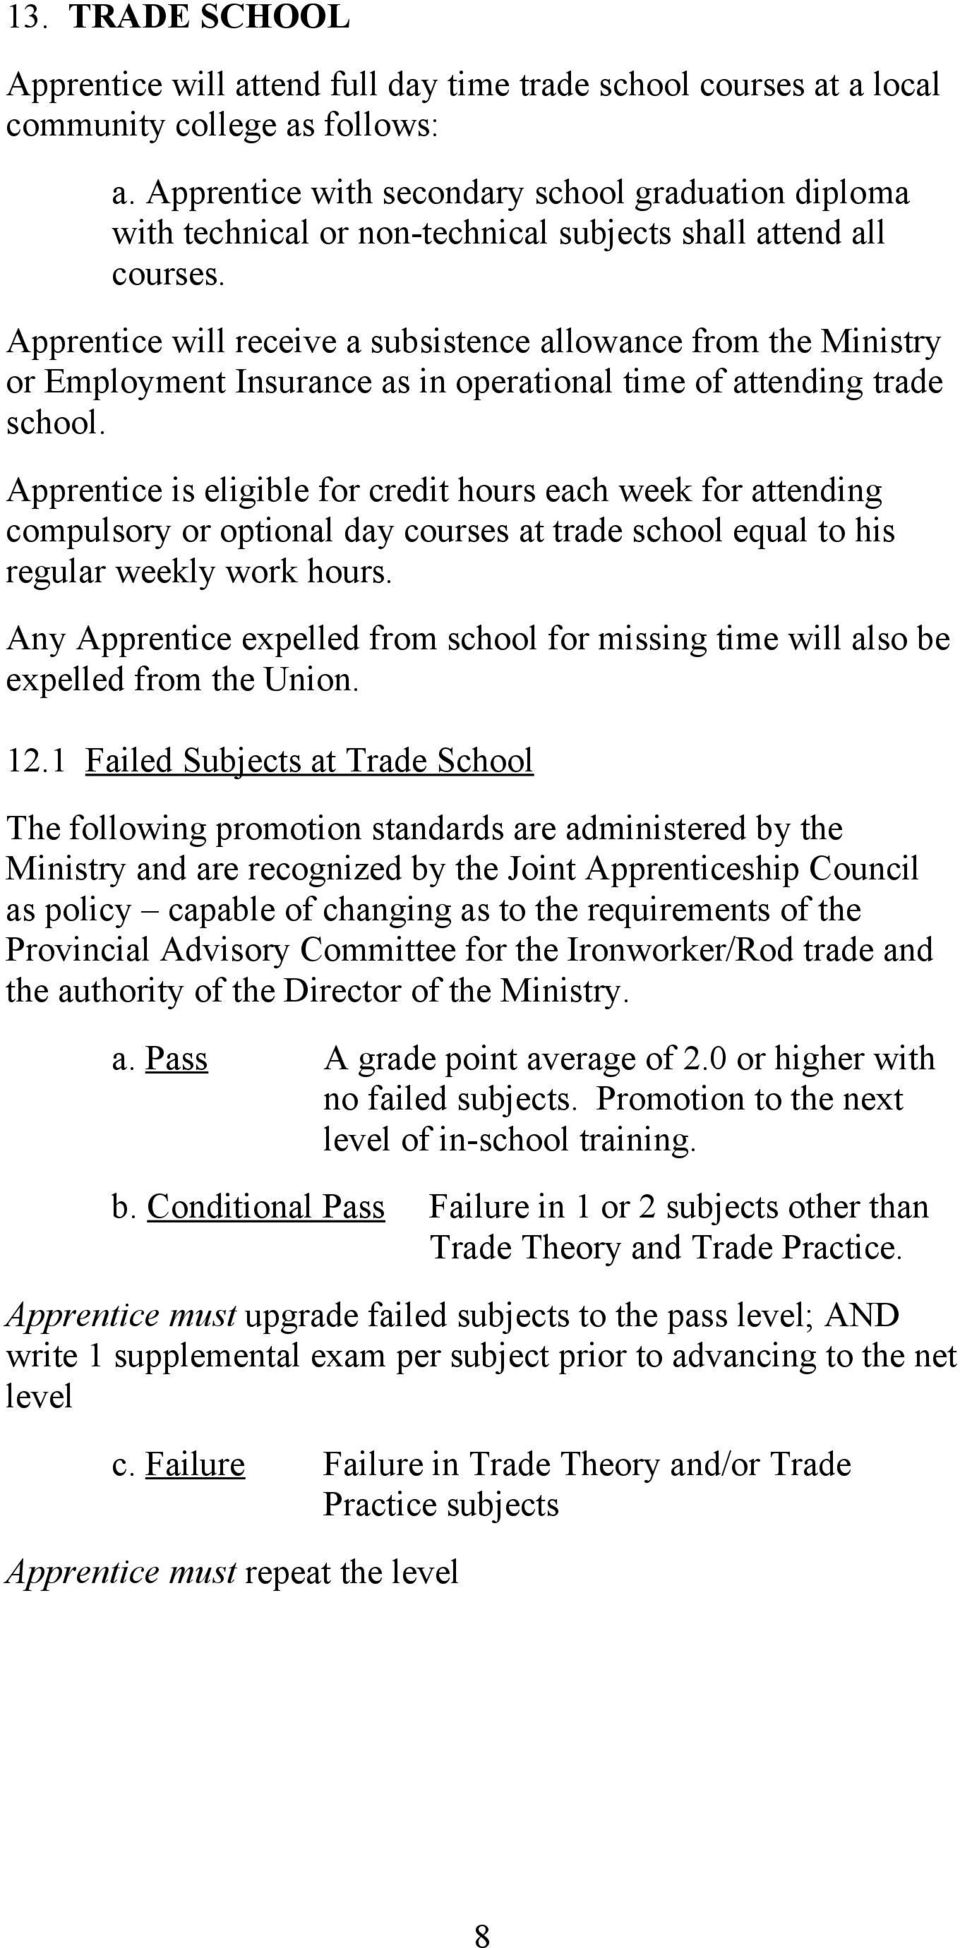 Apprentice will receive a subsistence allowance from the Ministry or Employment Insurance as in operational time of attending trade school.